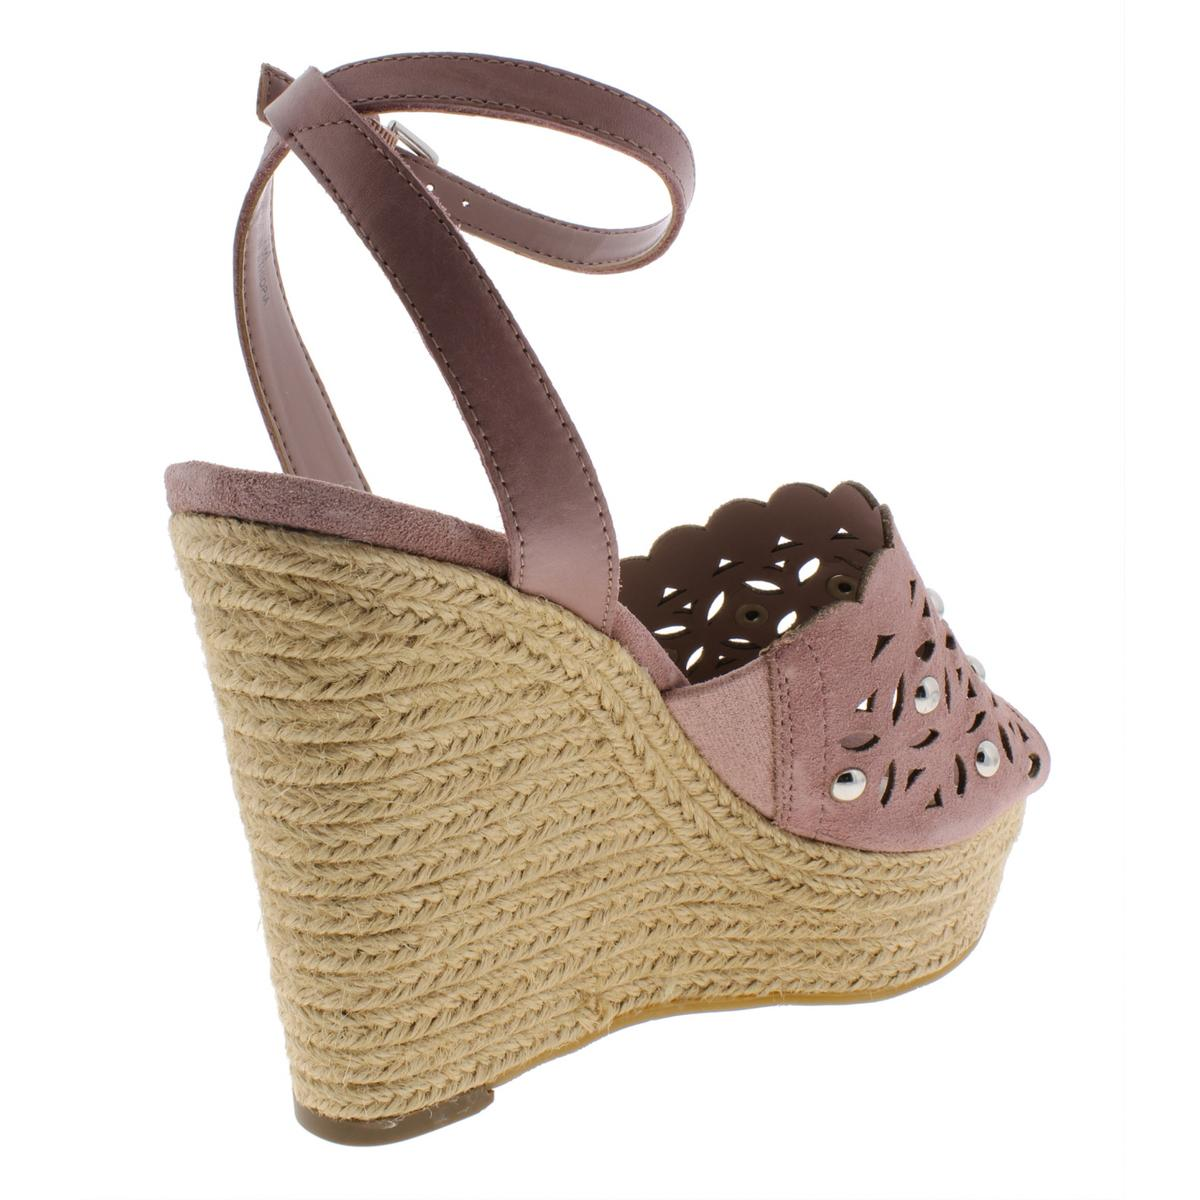 Marc-Fisher-Womens-Hata-Suede-Wedges-Embellished-Espadrilles-Shoes-BHFO-6455 thumbnail 11